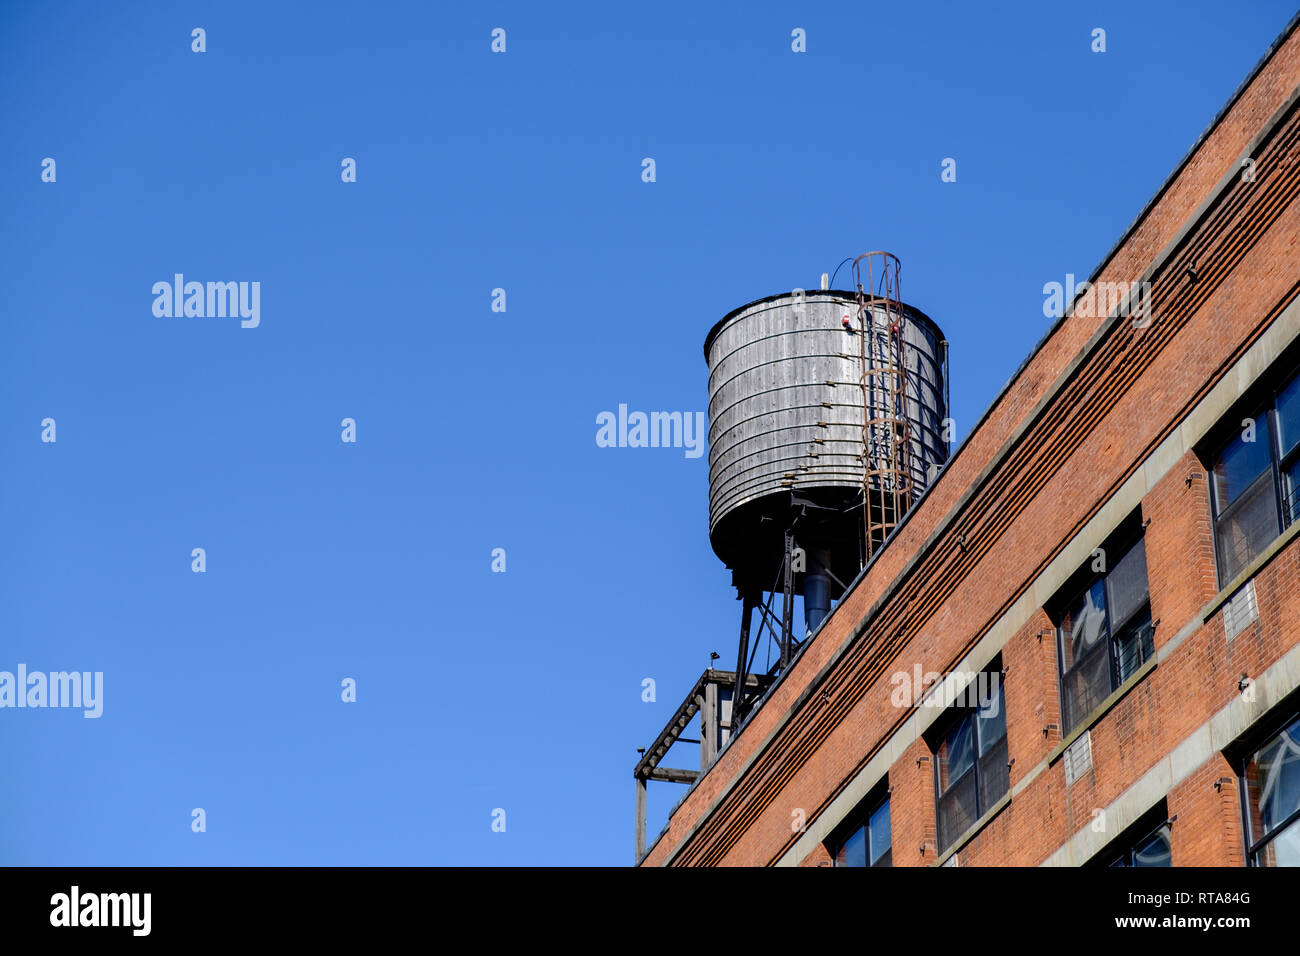 Old round water tower on the top of a building in Chelsea, New York City. Bright blue sky. March 18, 2018 - Stock Image